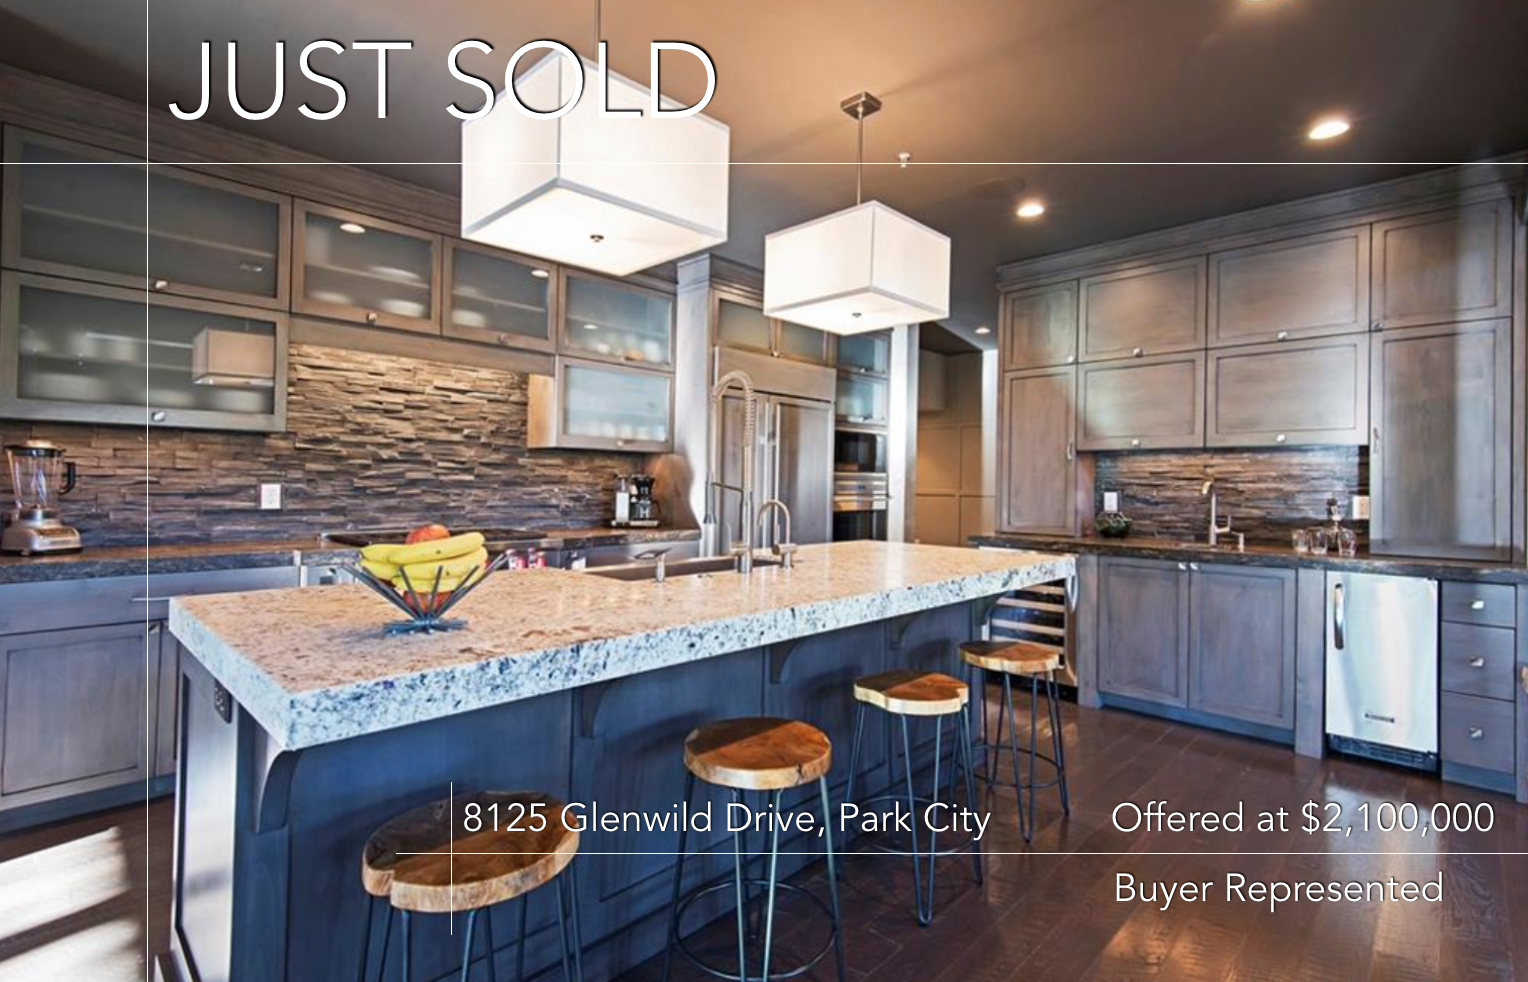 SOLD 8125 Glenwild Drive Park City Utah